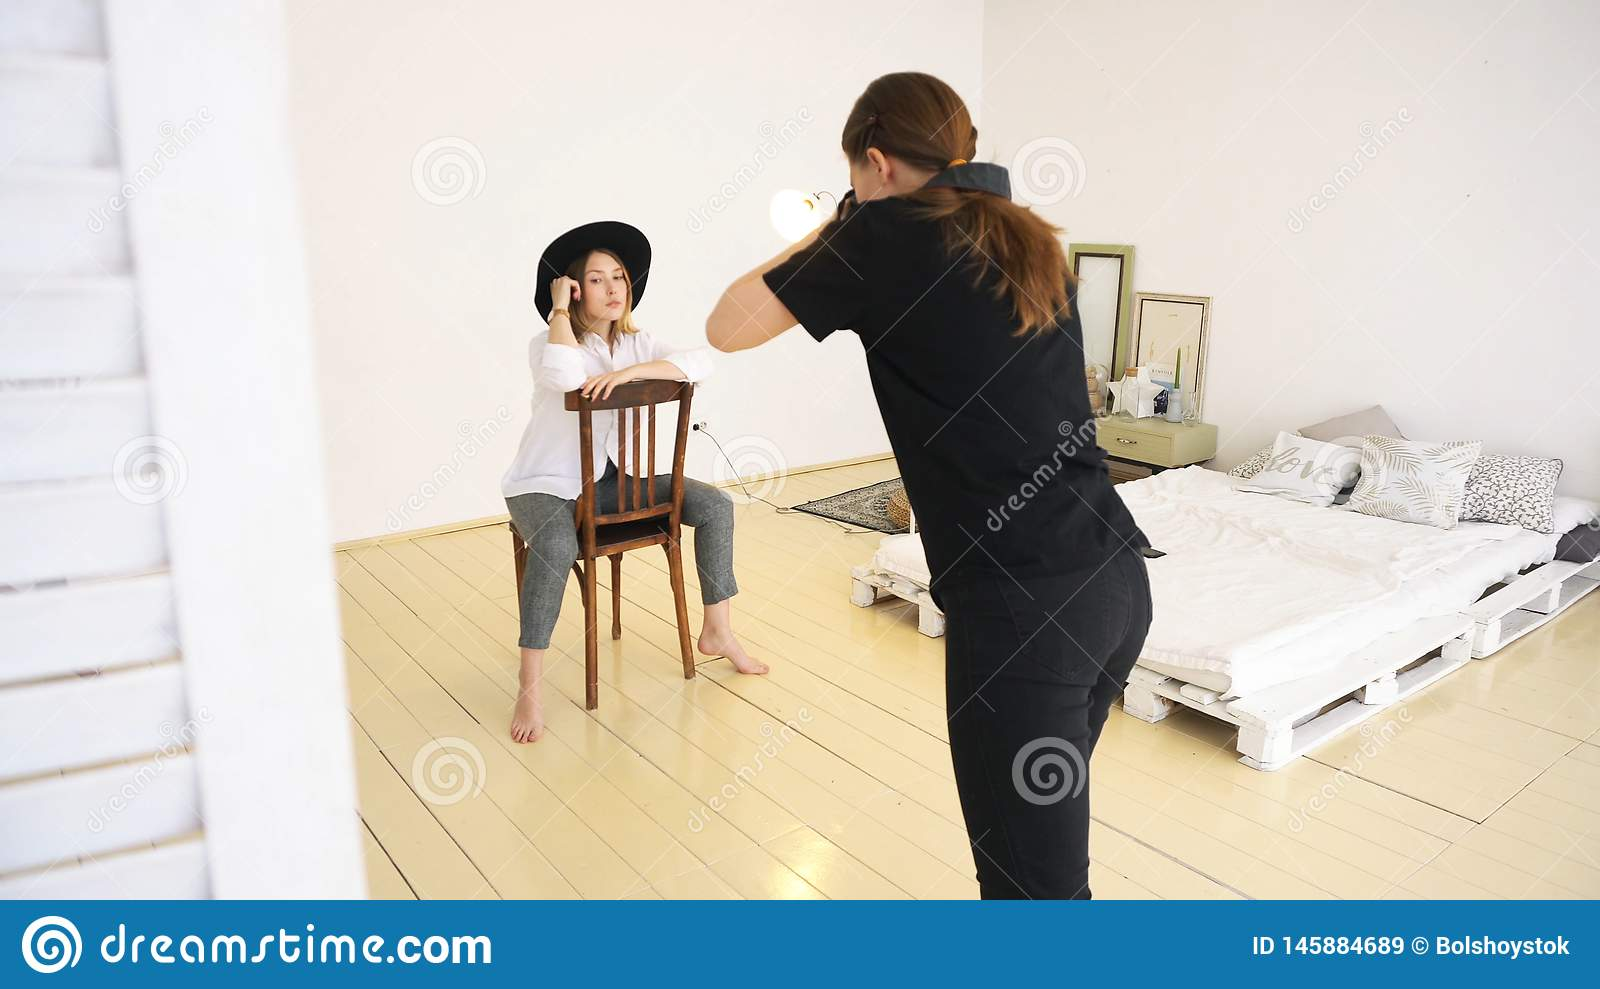 Close-up of young female photographer in black clothes taking pfotos of stylish young woman in black hat, white shirt